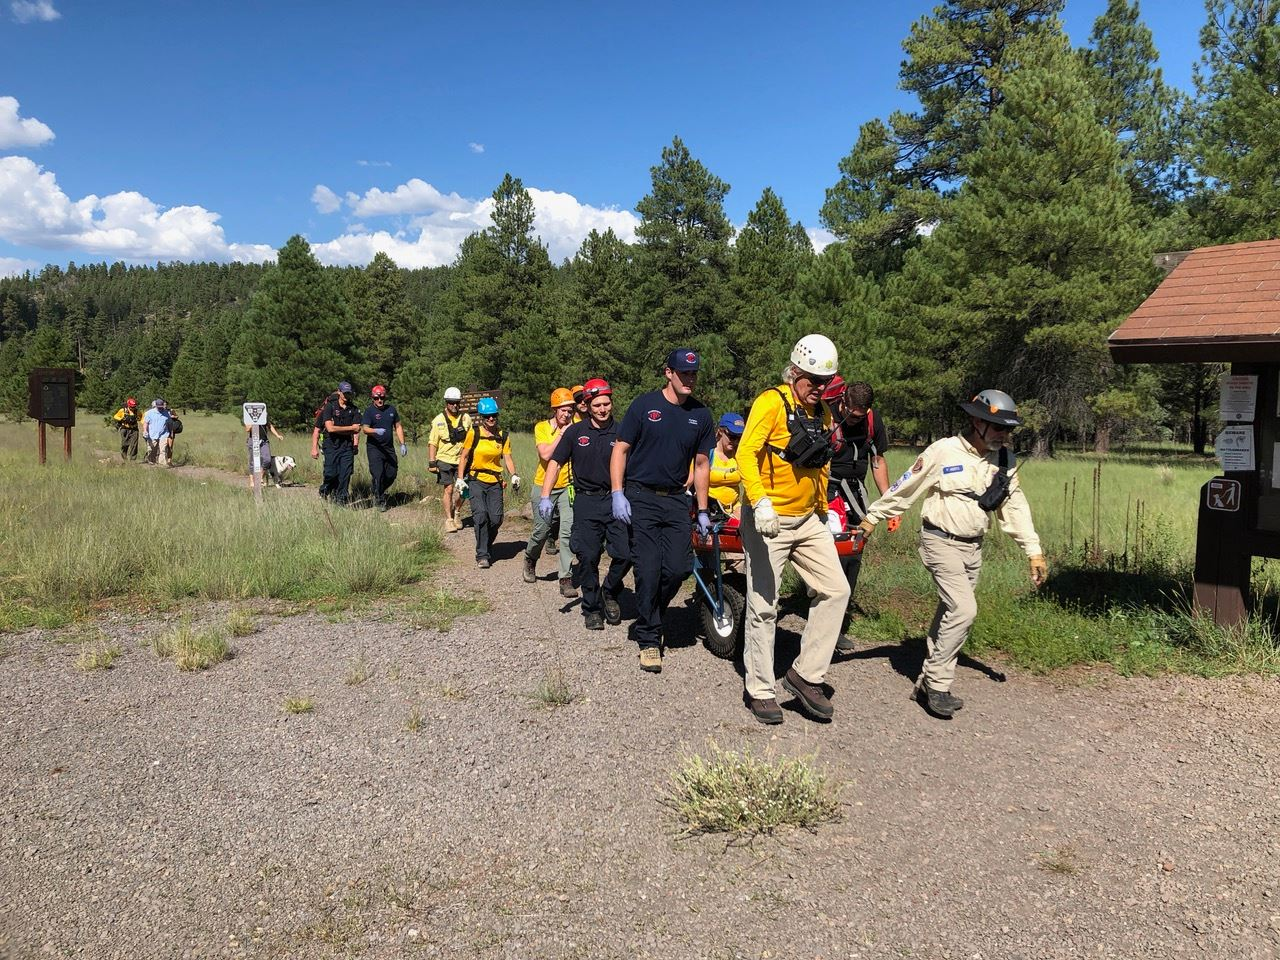 12-Year-Old Rescued After Being Injured in Climbing Accident